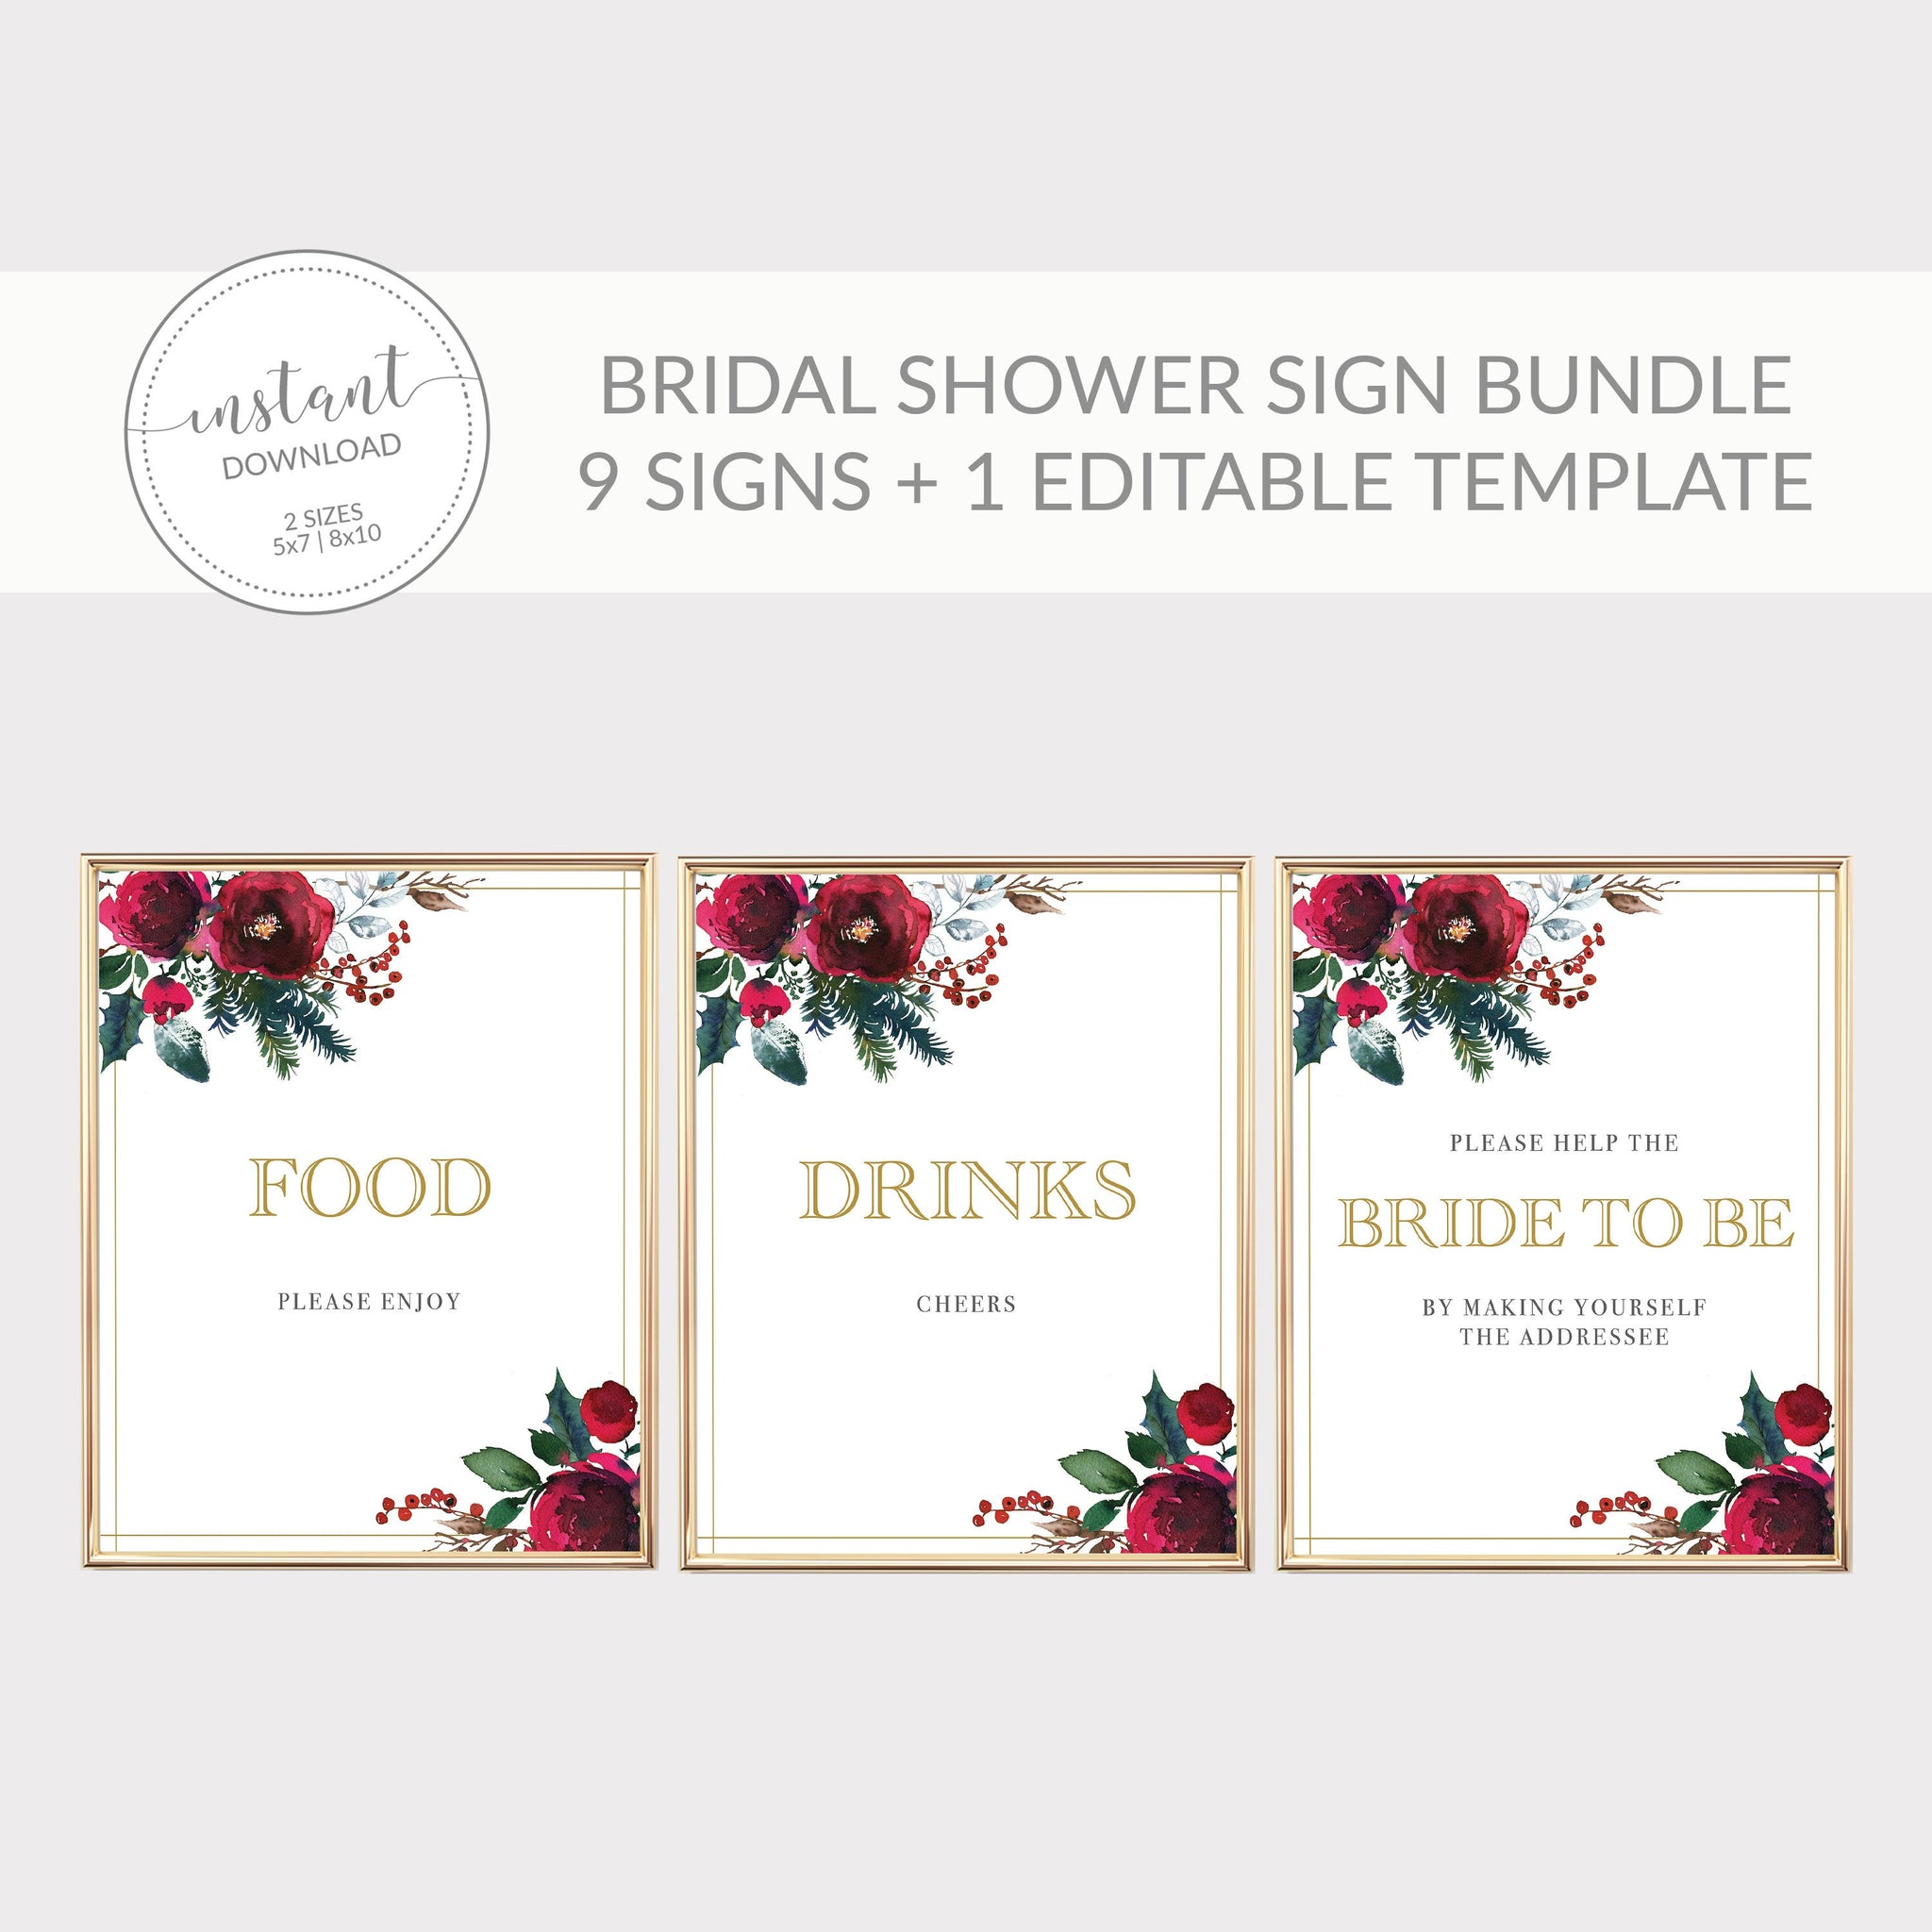 Christmas Bridal Shower Sign Bundle, Christmas Bridal Shower Decorations, Holiday Bridal Shower Table Signs, DIGITAL DOWNLOAD CG100 - @PlumPolkaDot